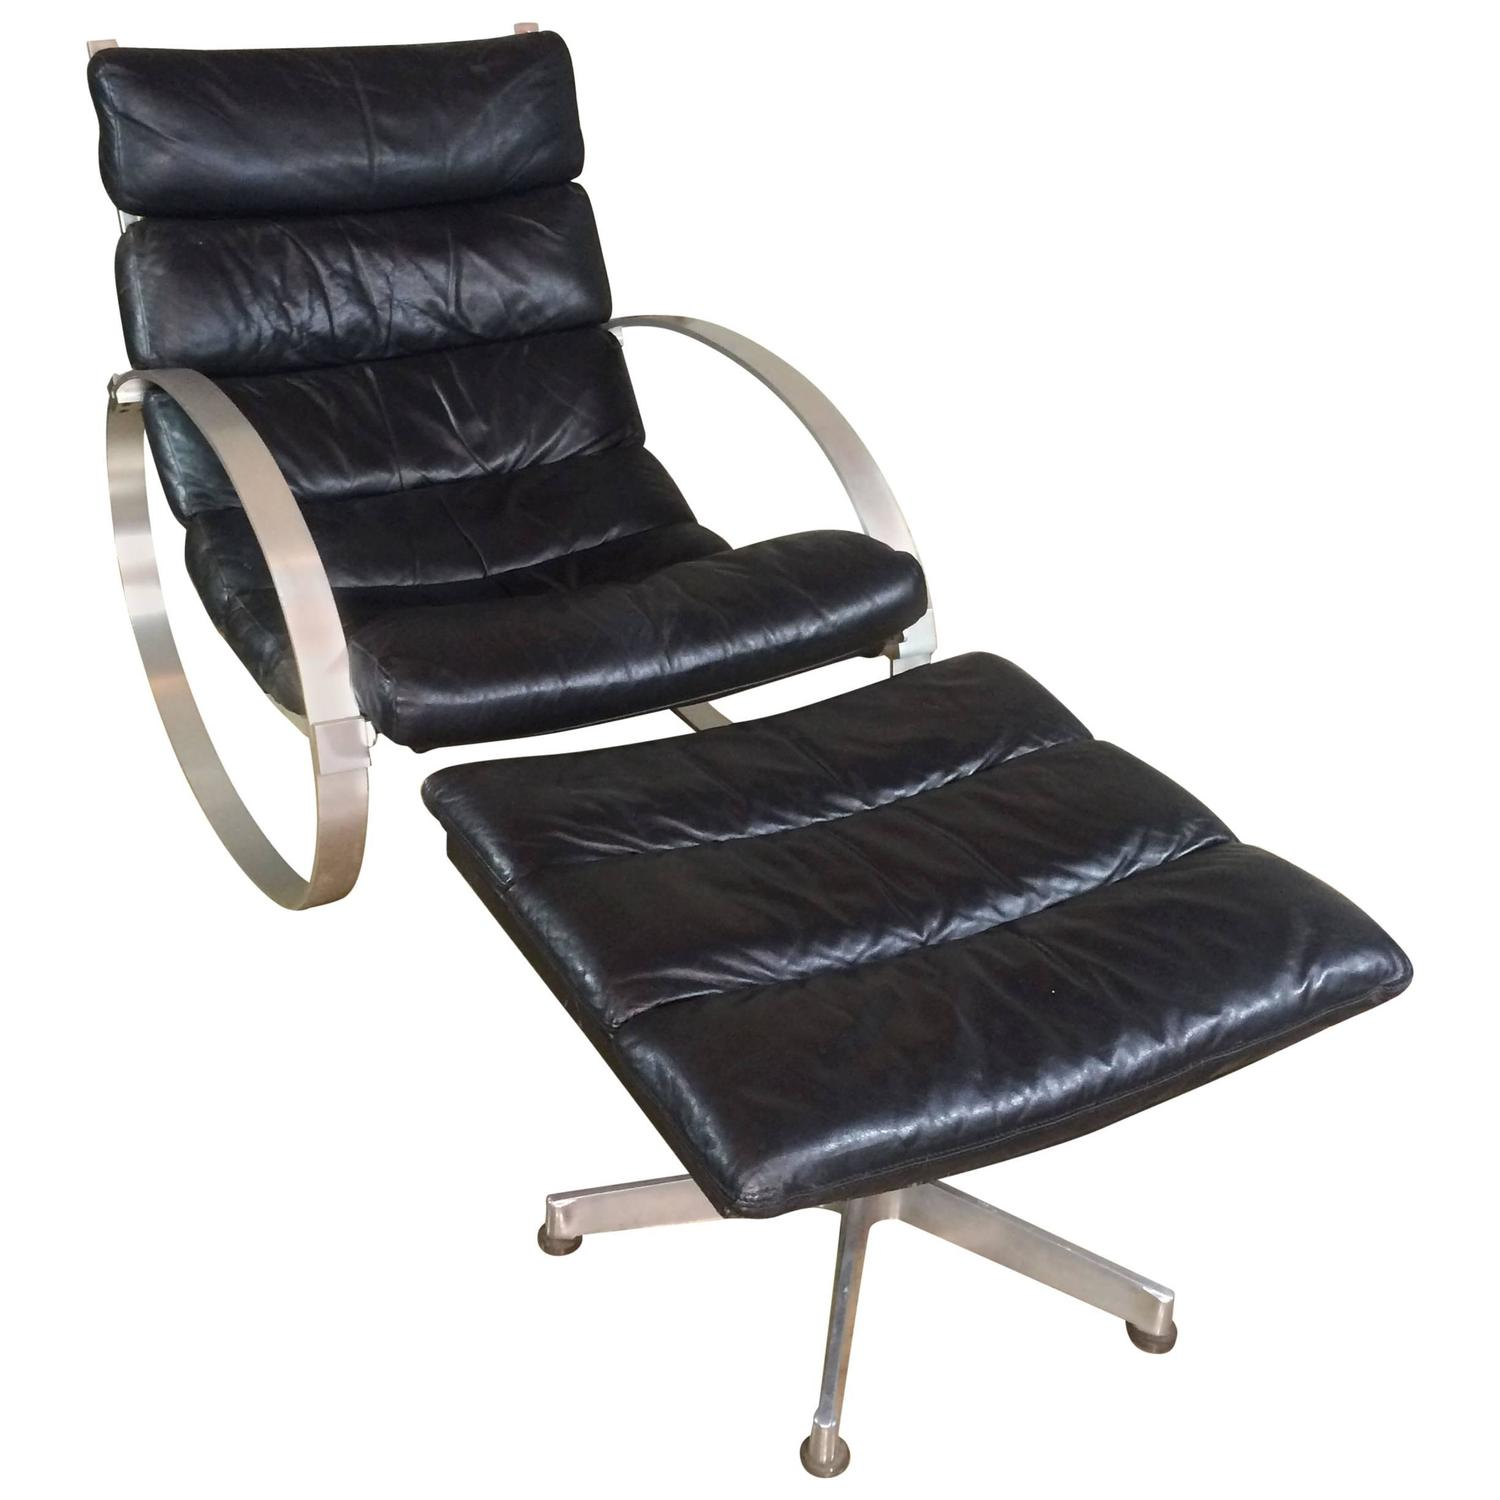 rocking chair with footstool india recliner sofa hans kaufeld leather and ottoman for sale at